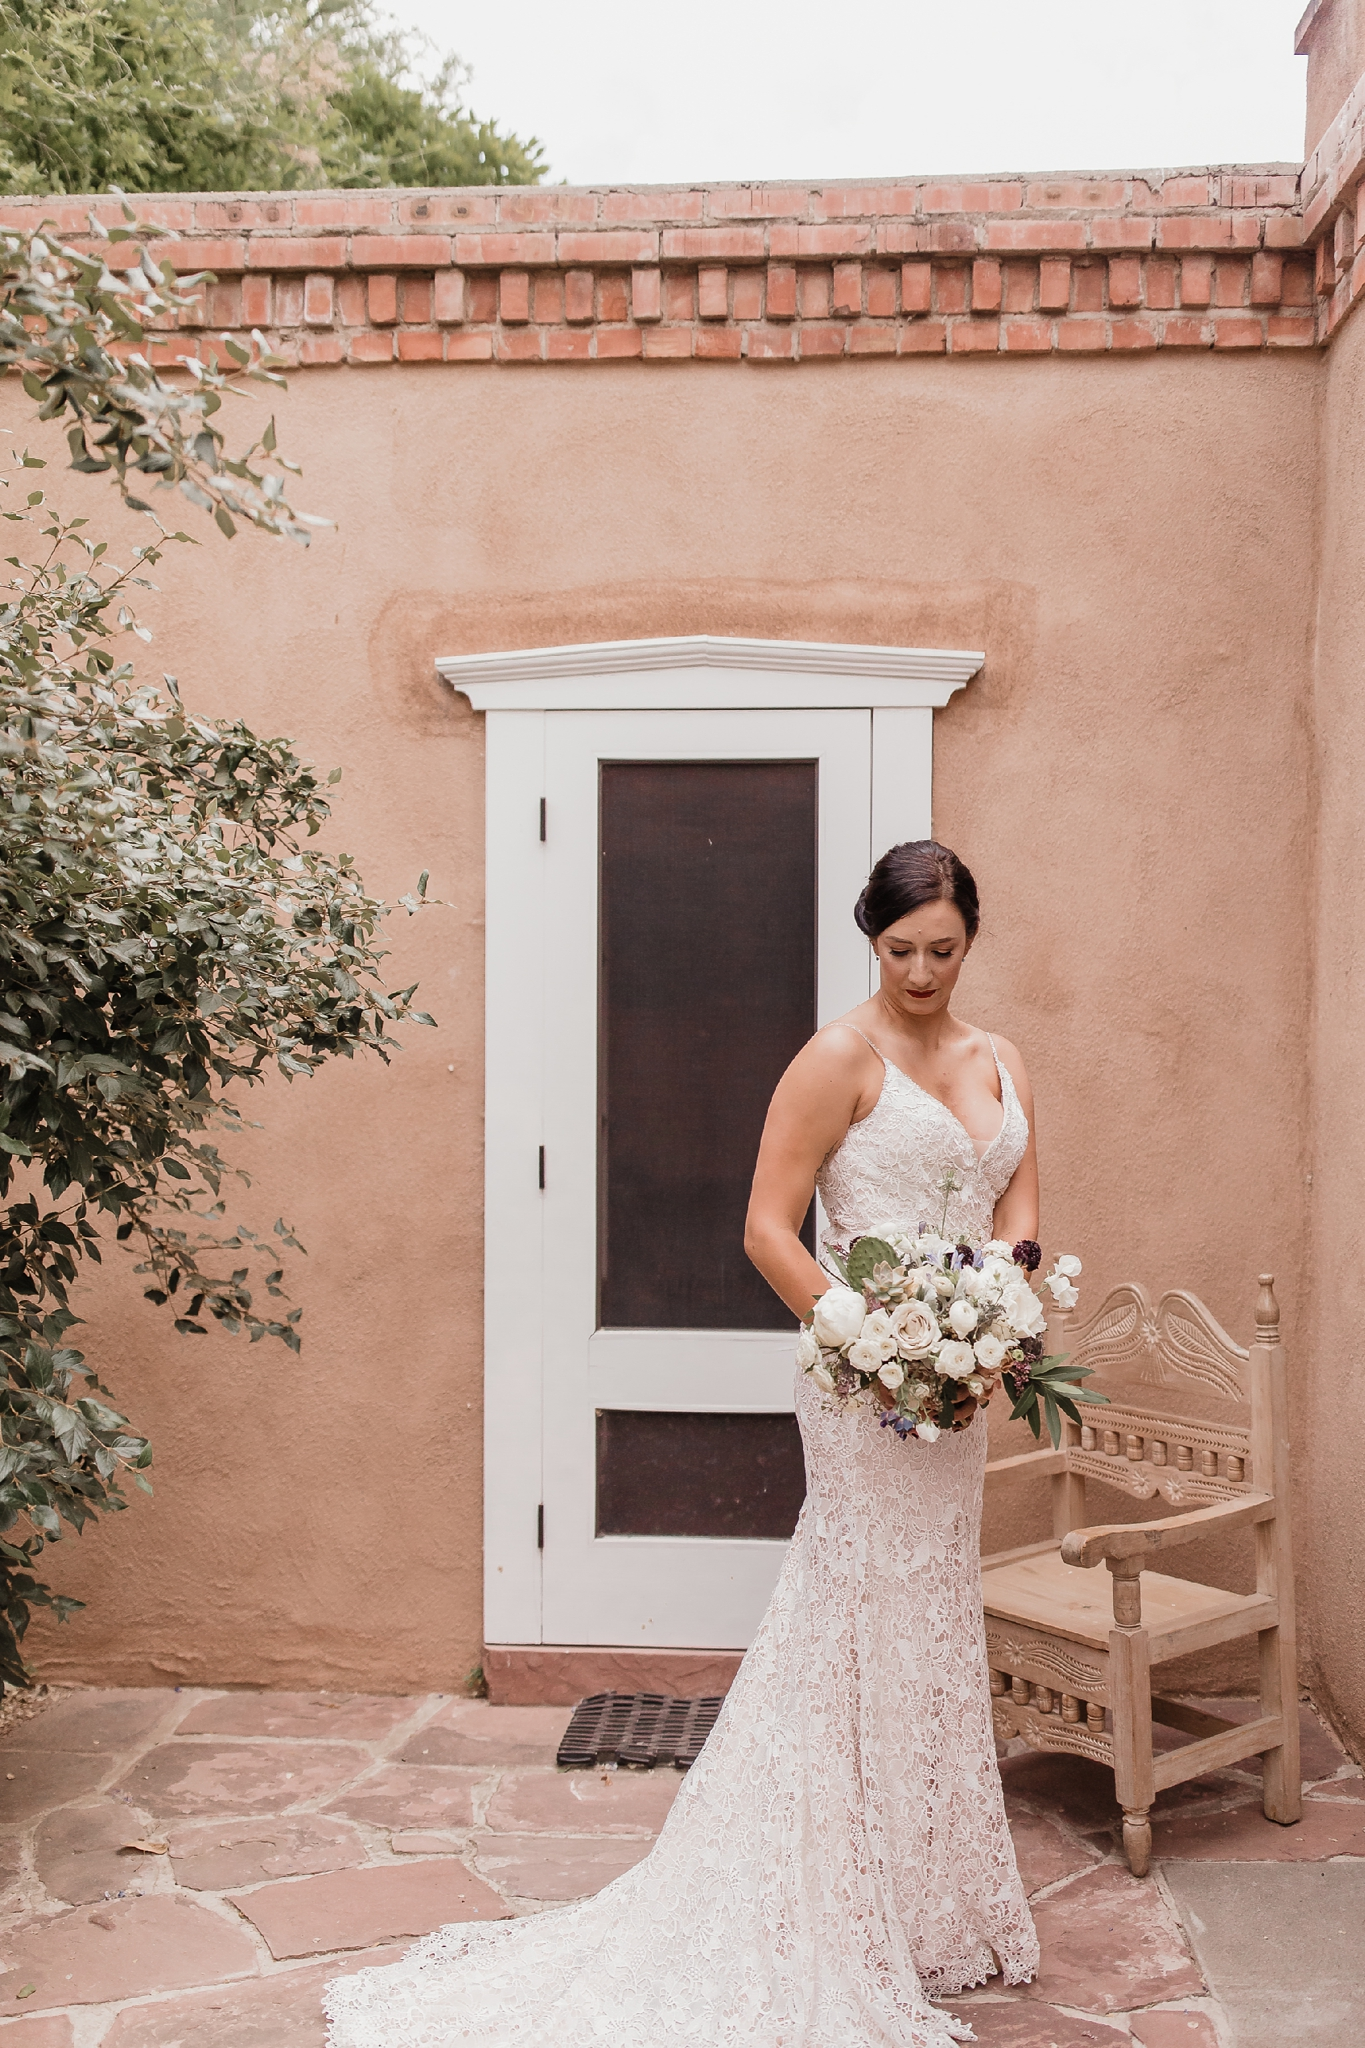 Alicia+lucia+photography+-+albuquerque+wedding+photographer+-+santa+fe+wedding+photography+-+new+mexico+wedding+photographer+-+new+mexico+wedding+-+new+mexico+wedding+-+summer+wedding+-+los+poblanos+wedding+-+colorado+bride_0010.jpg